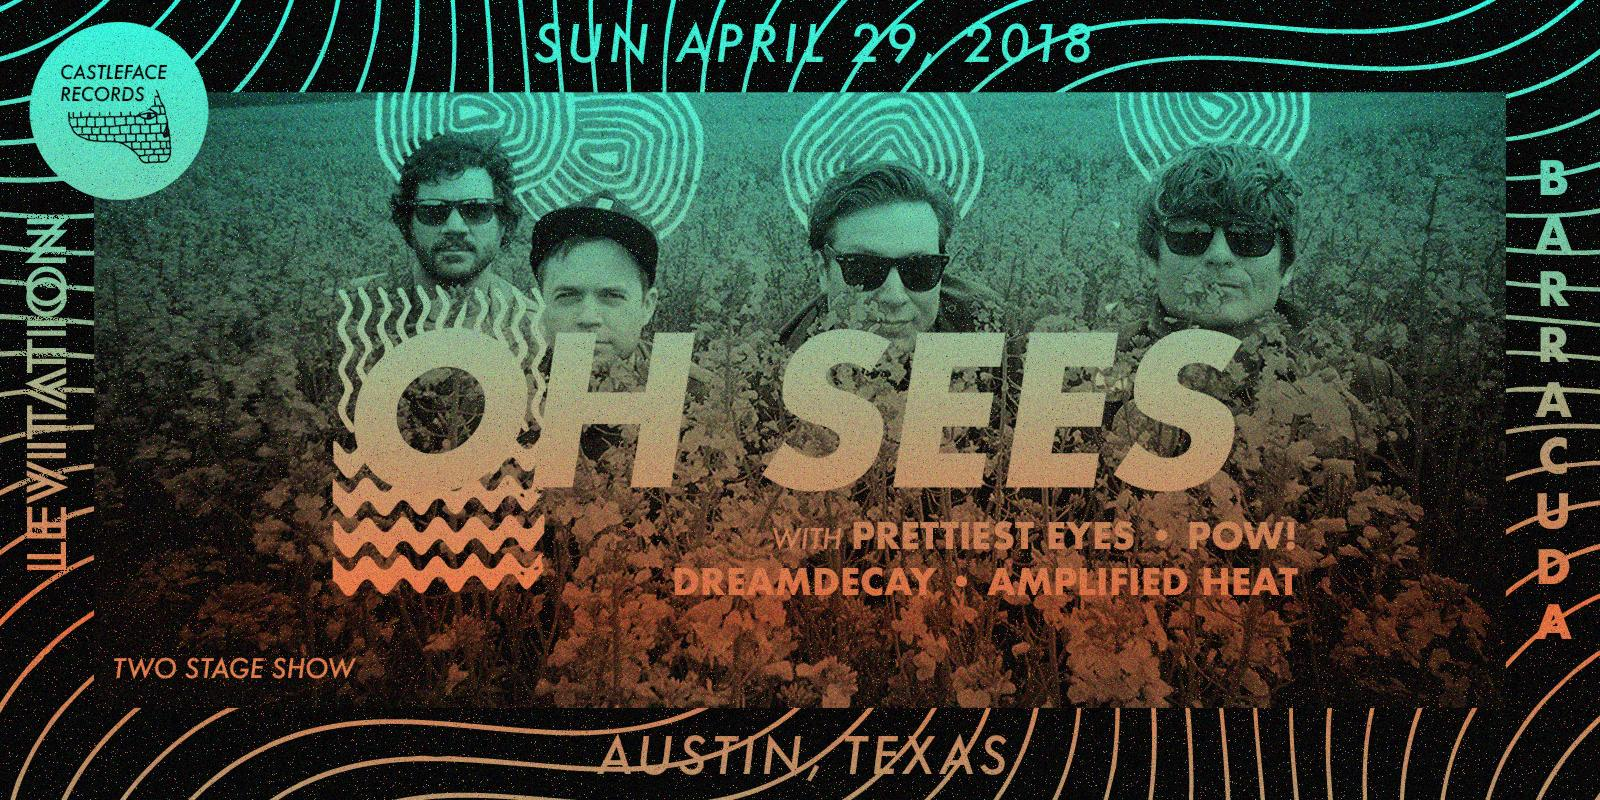 SOLD OUT - Thee Oh Sees, Prettiest Eyes + more